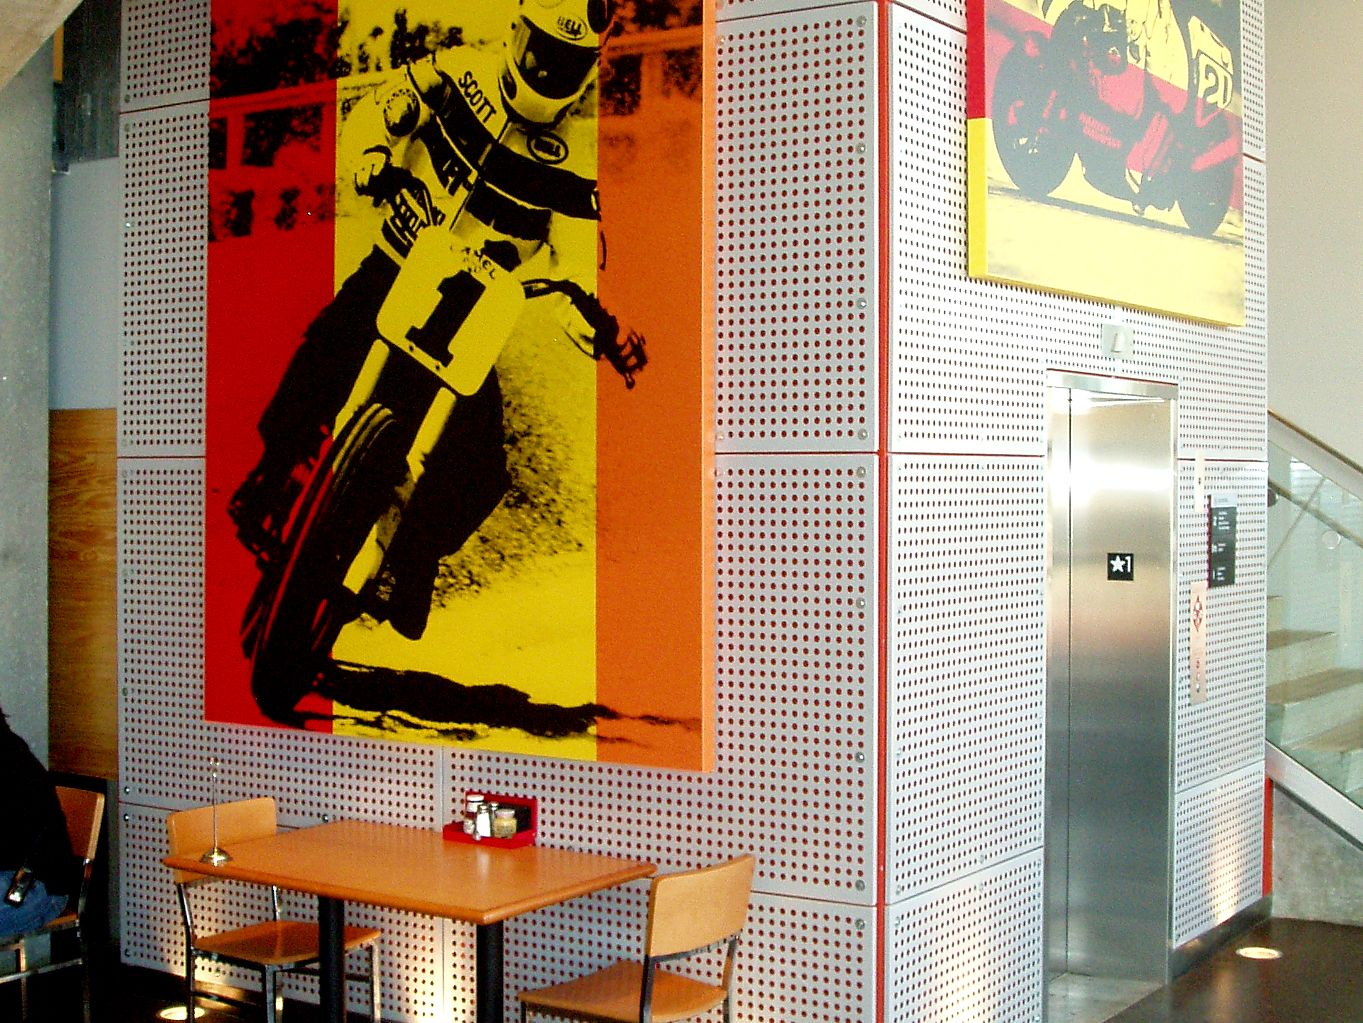 Perforated Metal used as decoration at the Harley-Davidson museum